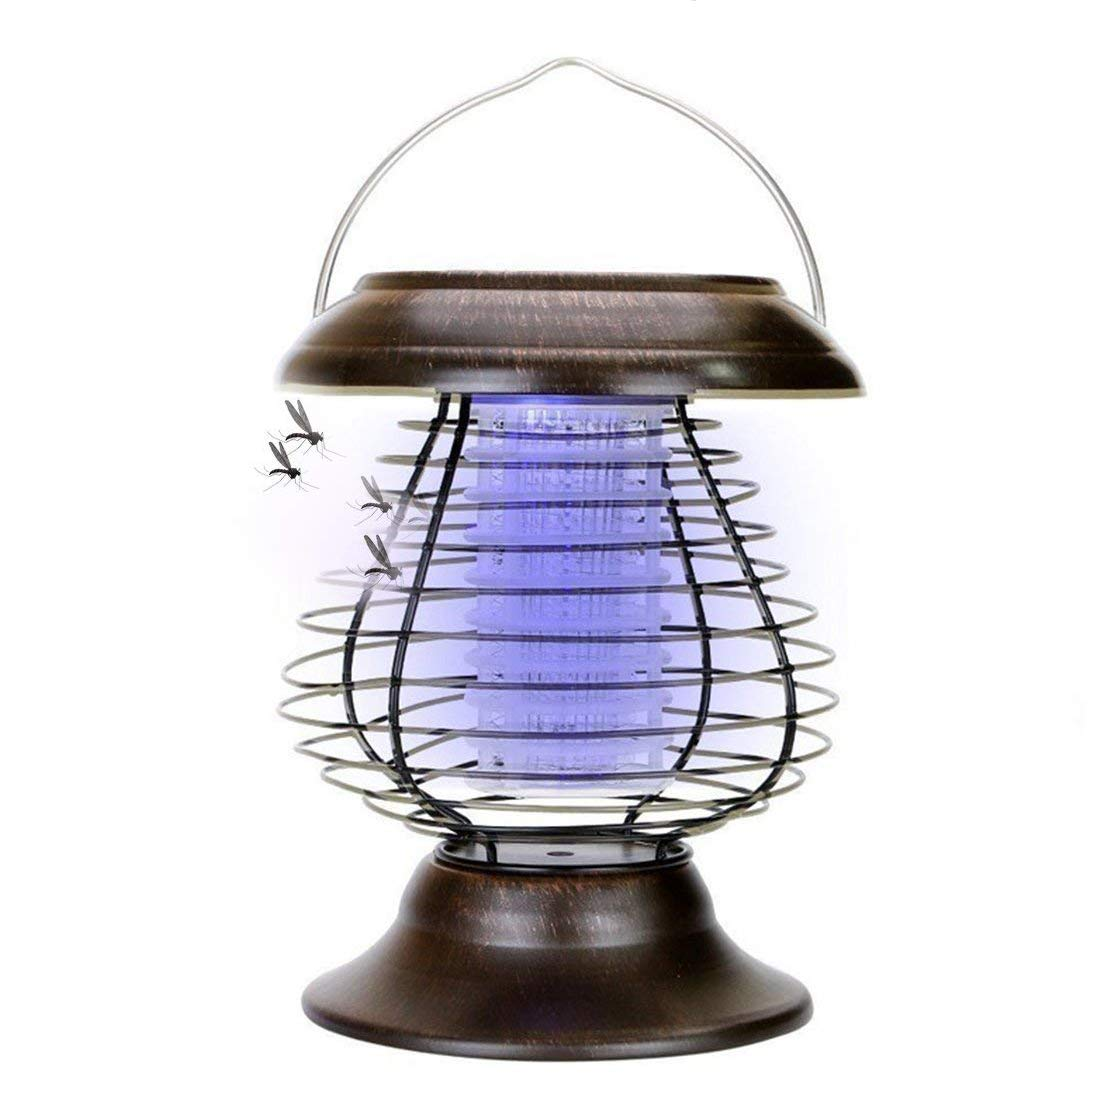 A-SZCXTOP Solar Mosquito Killer Lamp Indoor & Outdoor Insect Killer Waterproof Bug Zapper Light for Garden Decoration Camping Fishing UKPPLBDH953